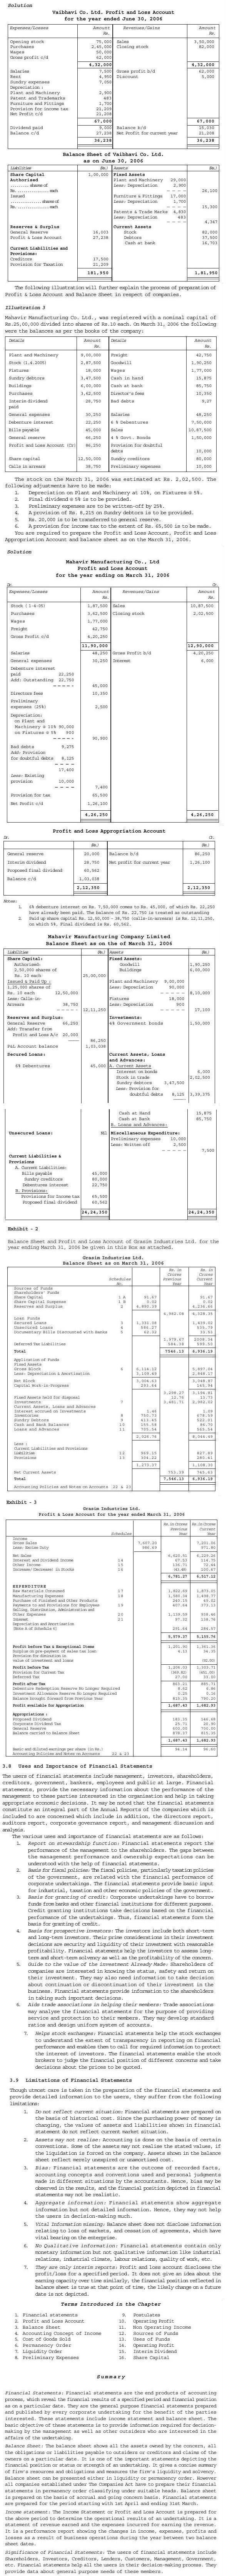 NCERT Class XII Accountancy II Chapter 3 - Financial Statements of a Company